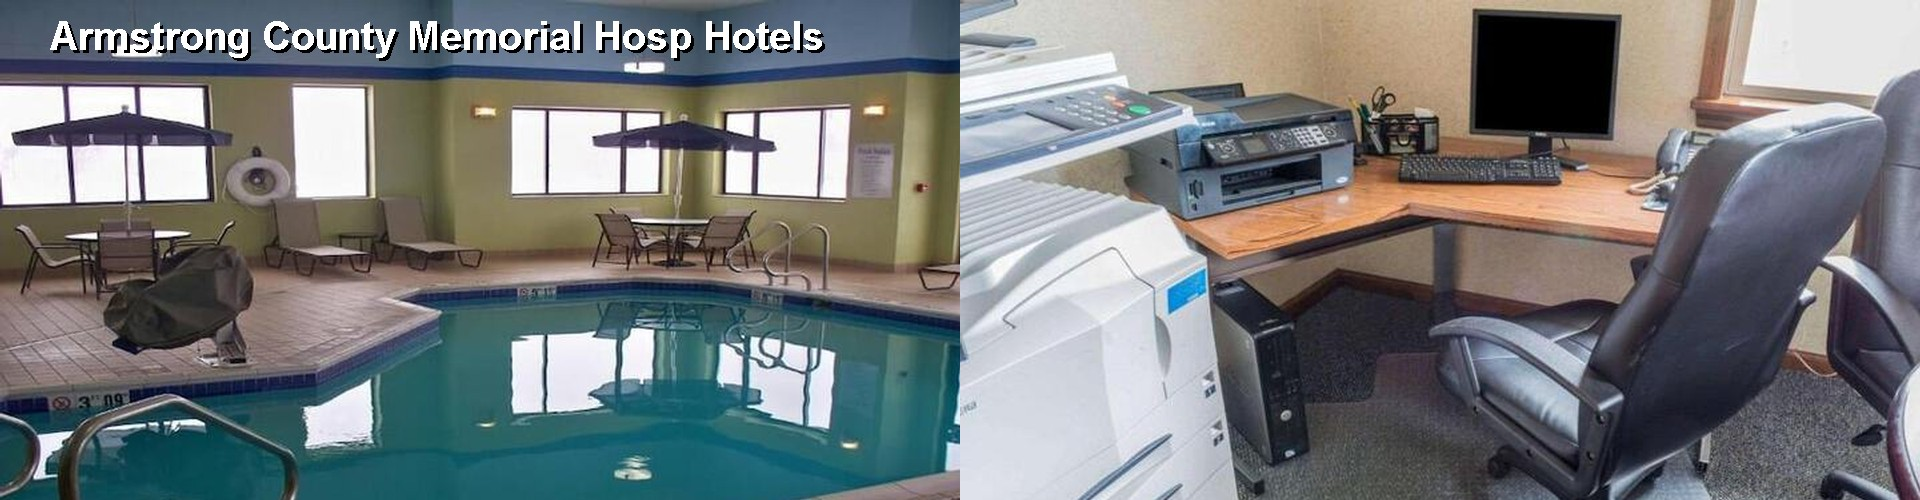 5 Best Hotels near Armstrong County Memorial Hosp